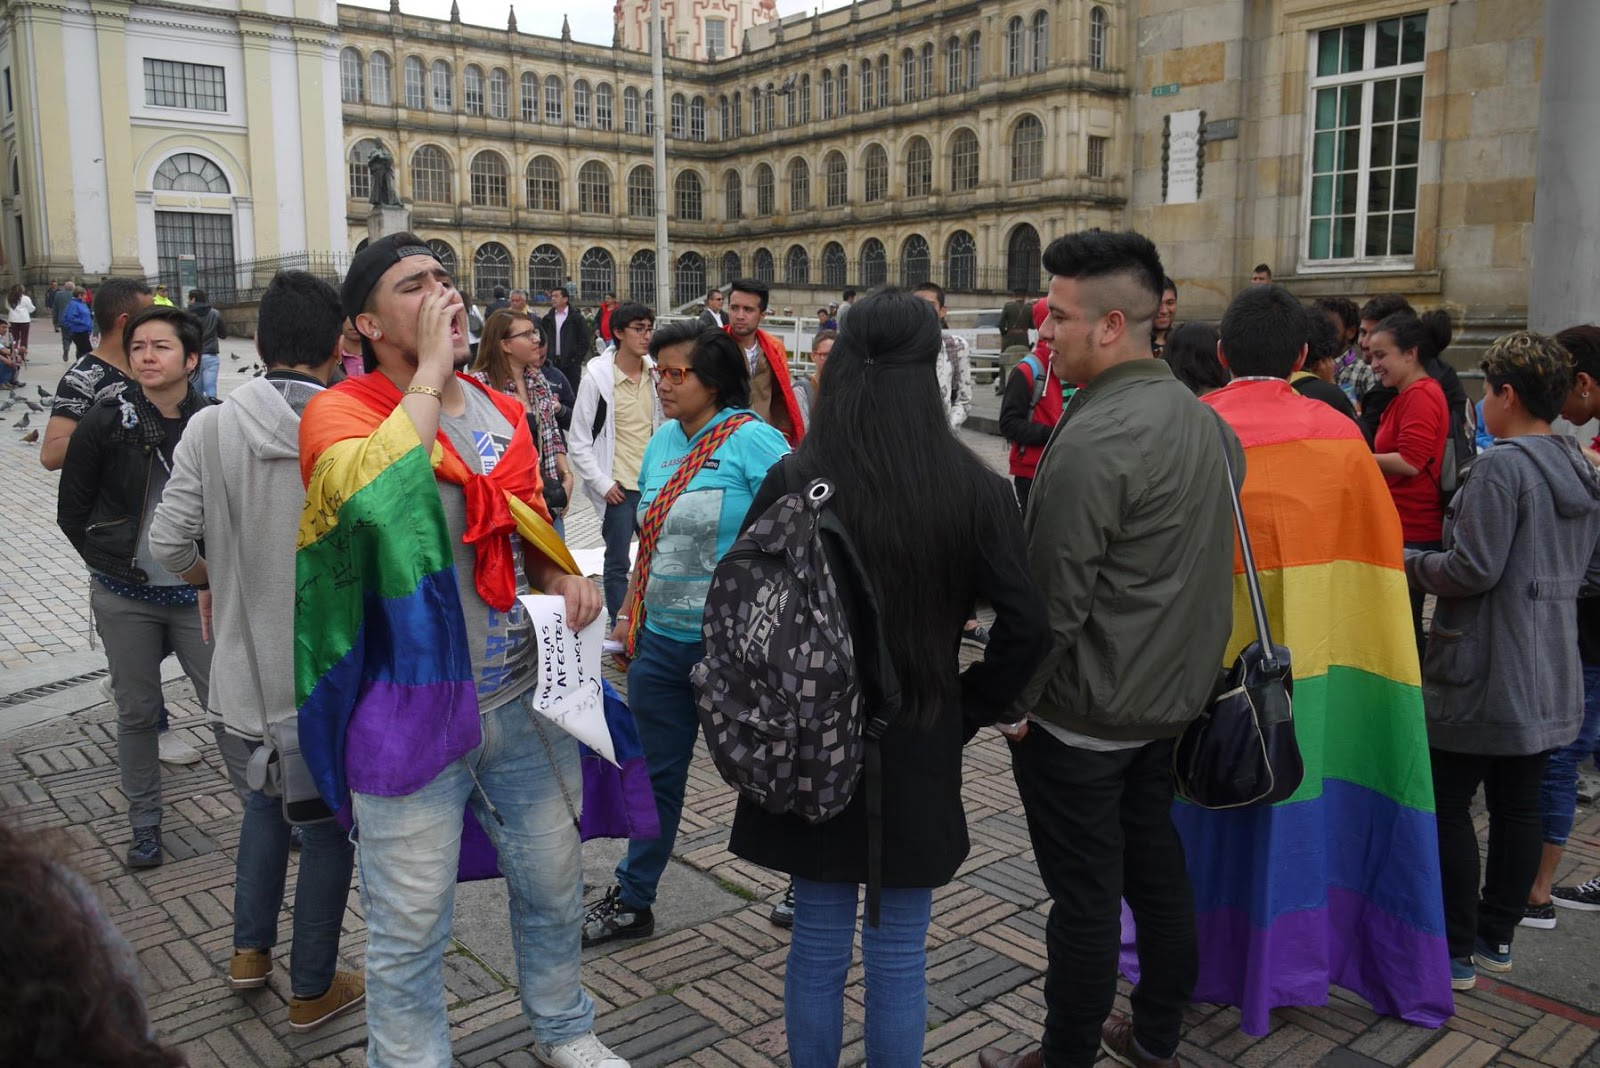 bogota gay singles Meet christian singles in bogota, new jersey online & connect in the chat rooms dhu is a 100% free dating site to find single christians.